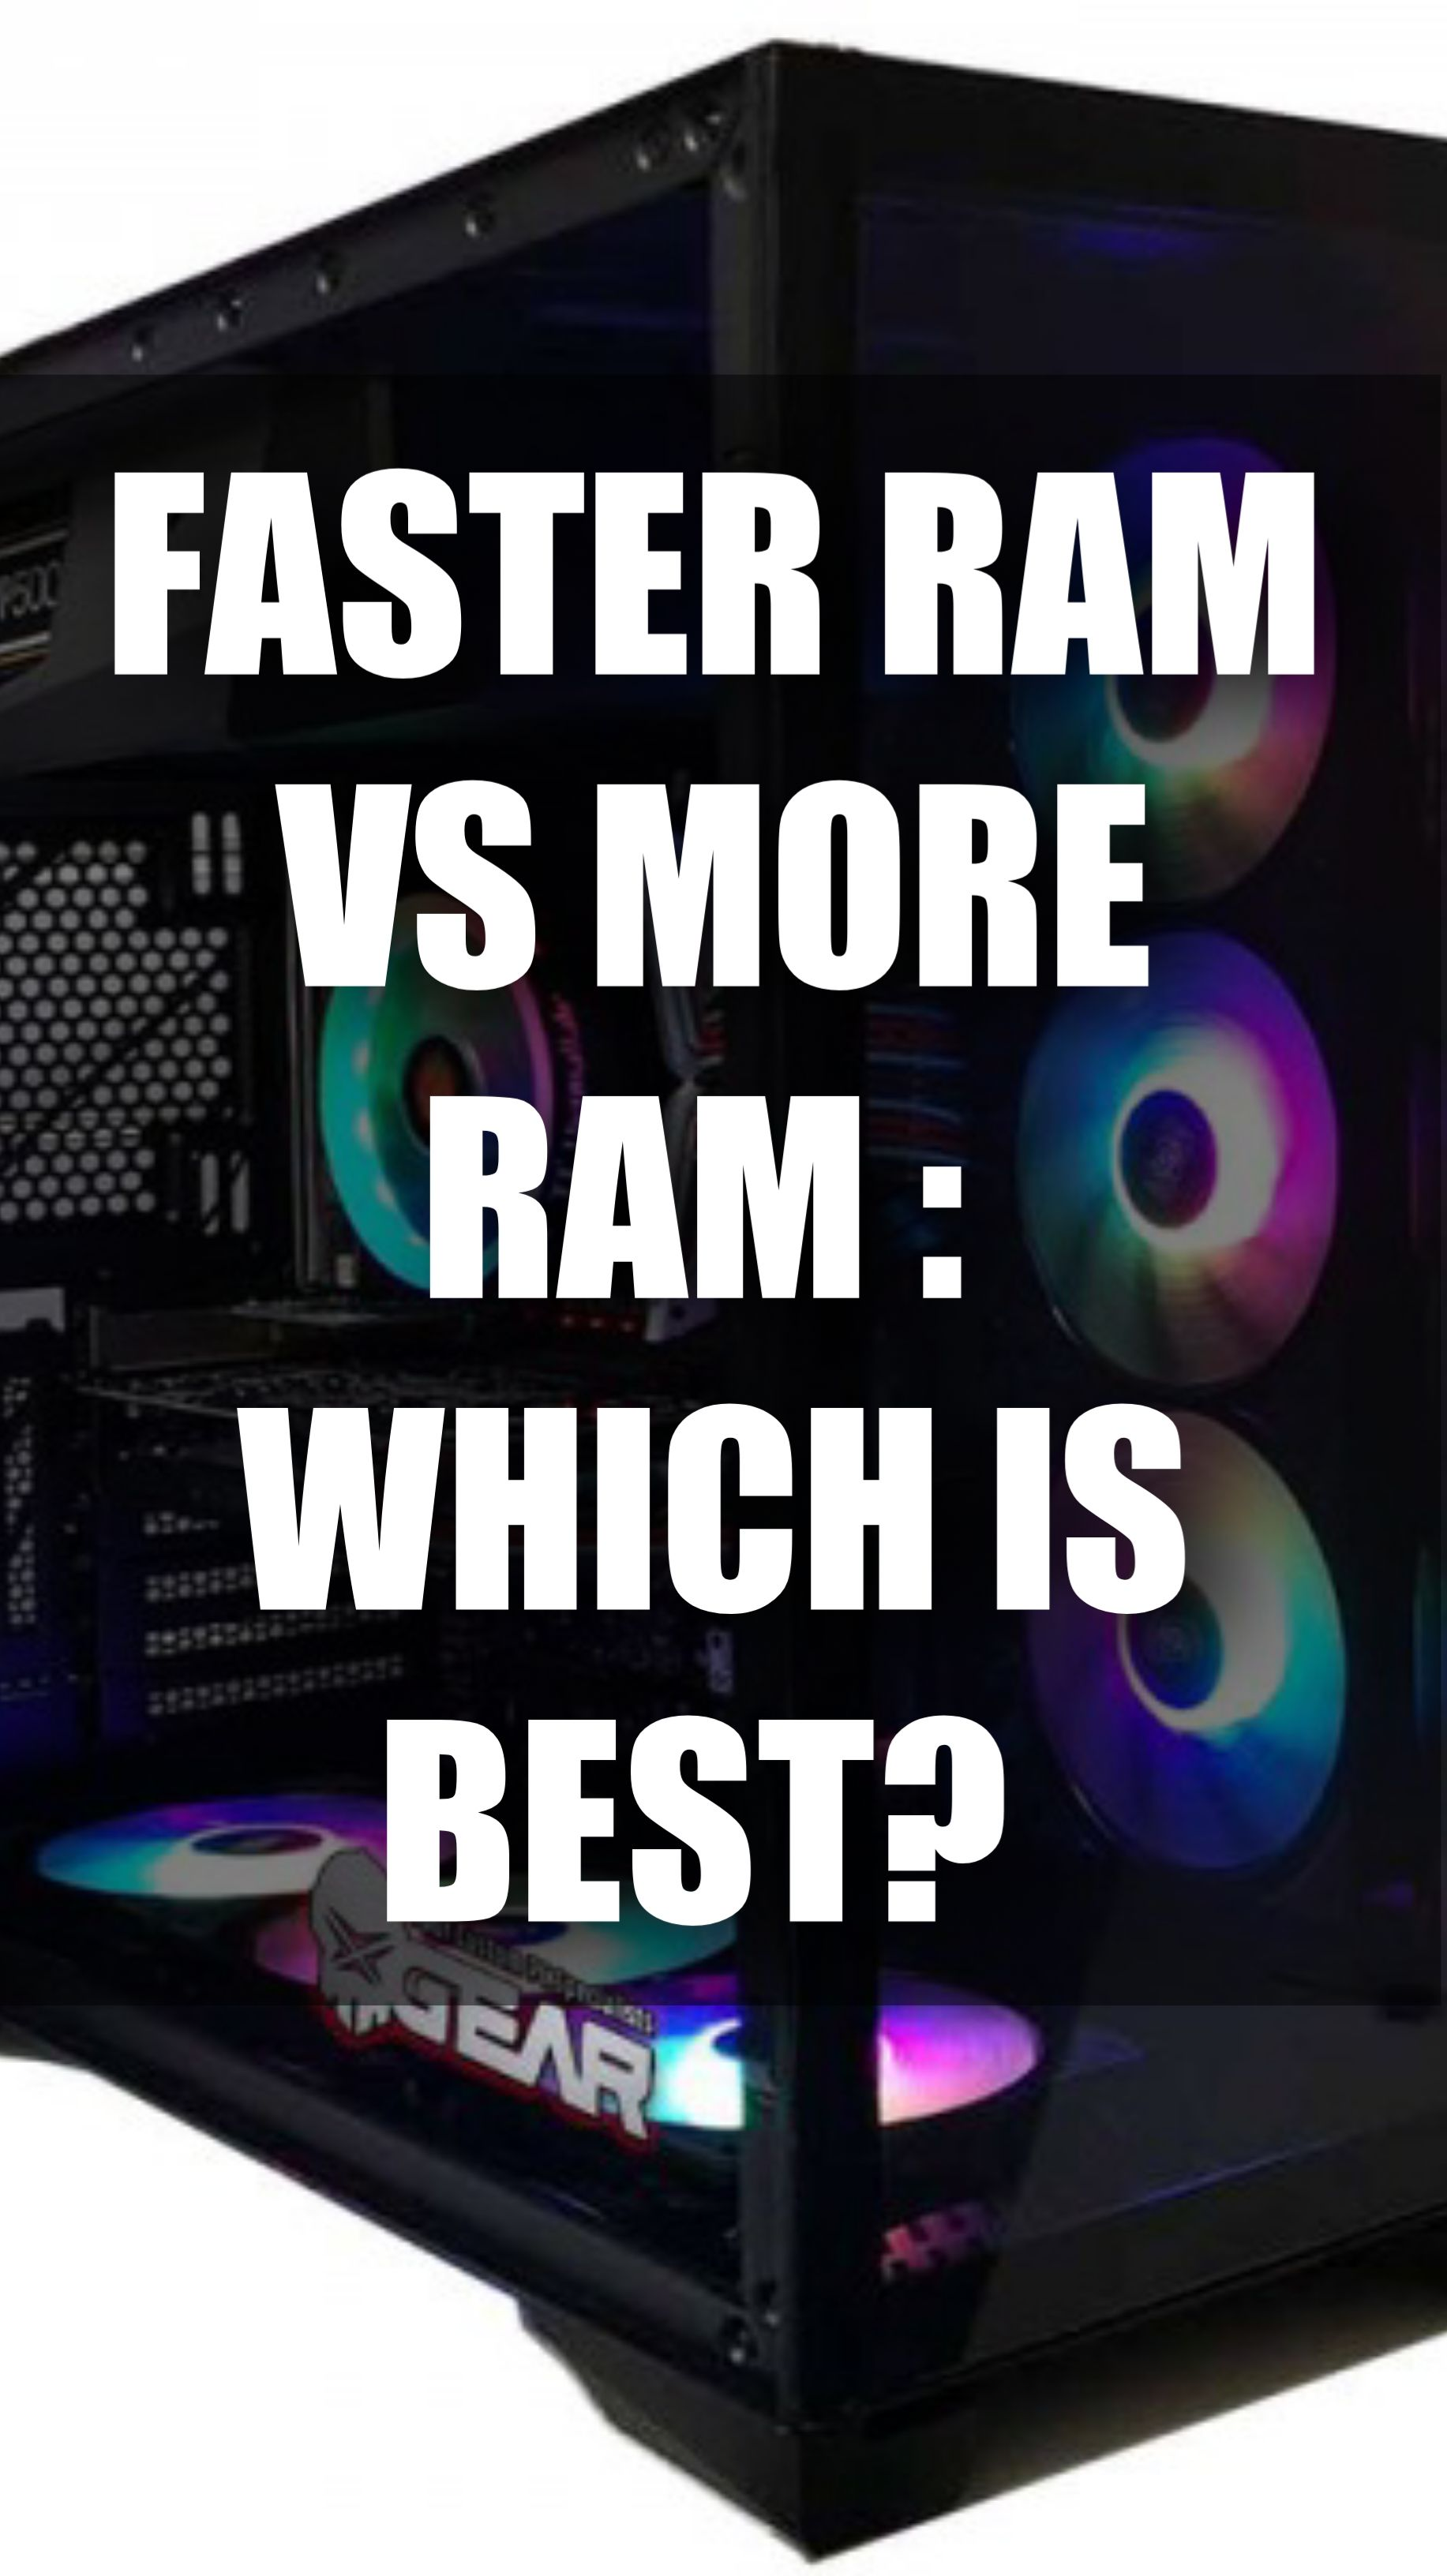 02a2d06bc6ef5d094ddcc3fe3b6c0e5e - How To Get Rid Of Ram On Your Phone